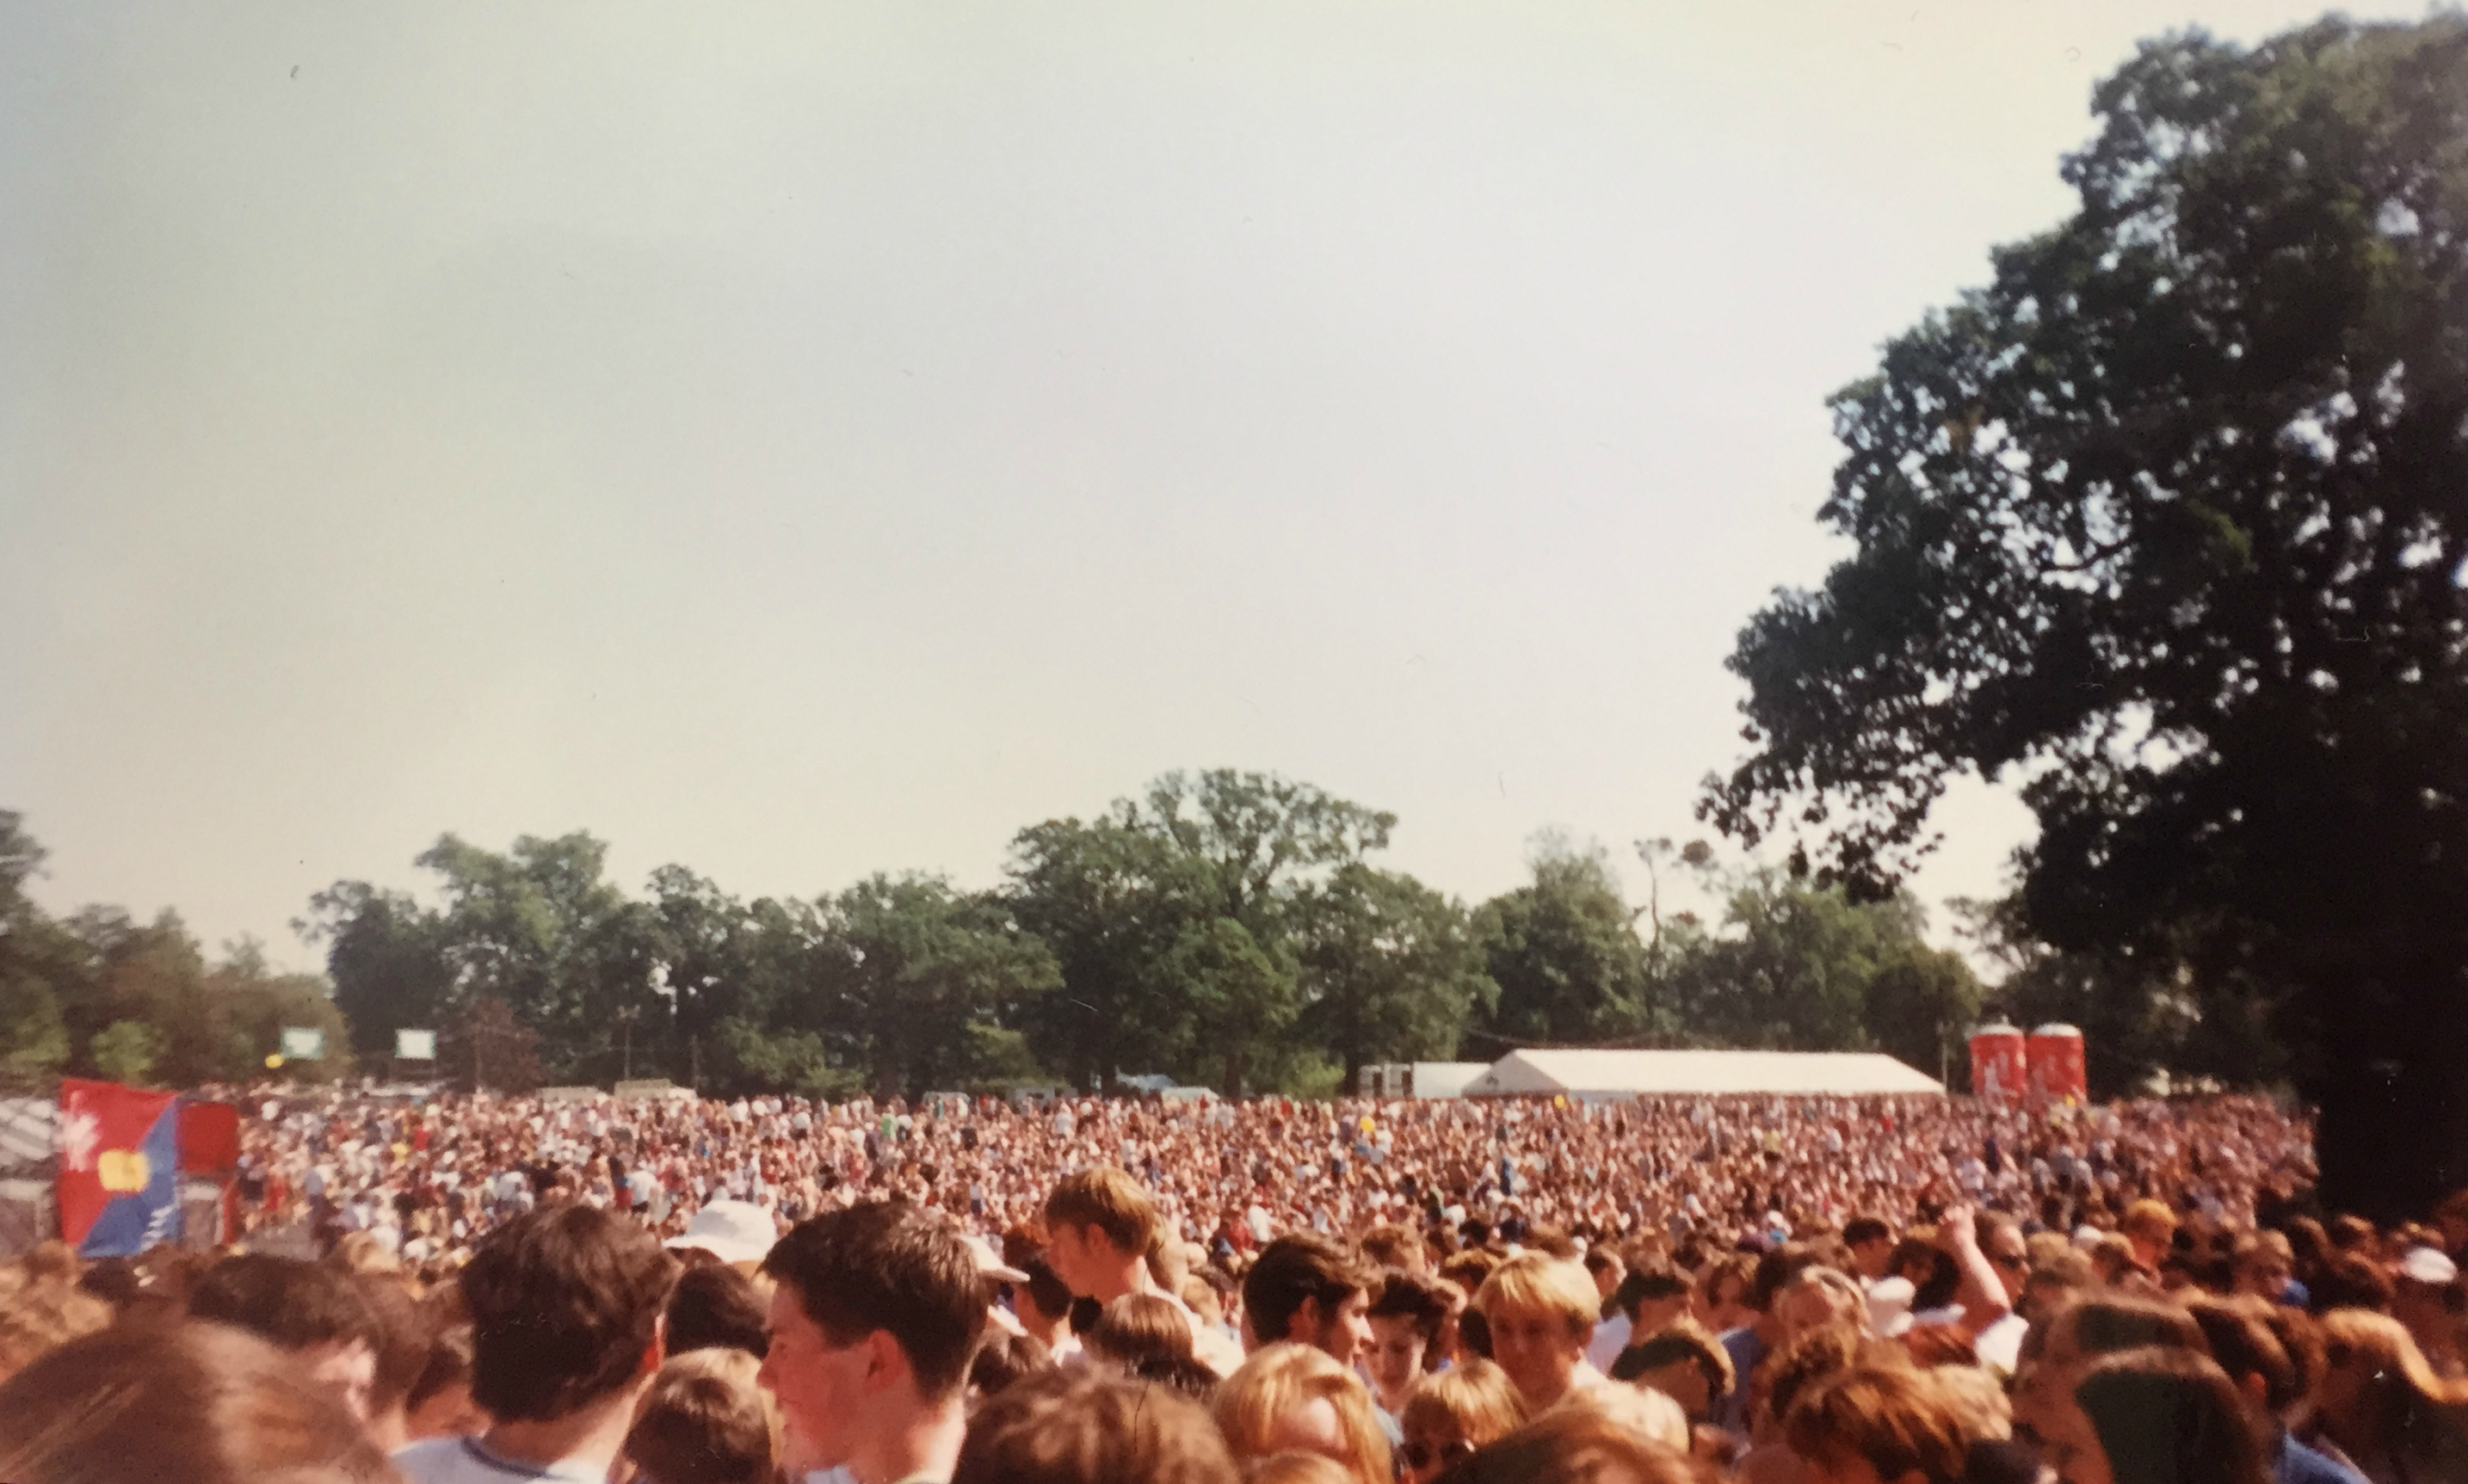 Crowd at V96 festival 1996